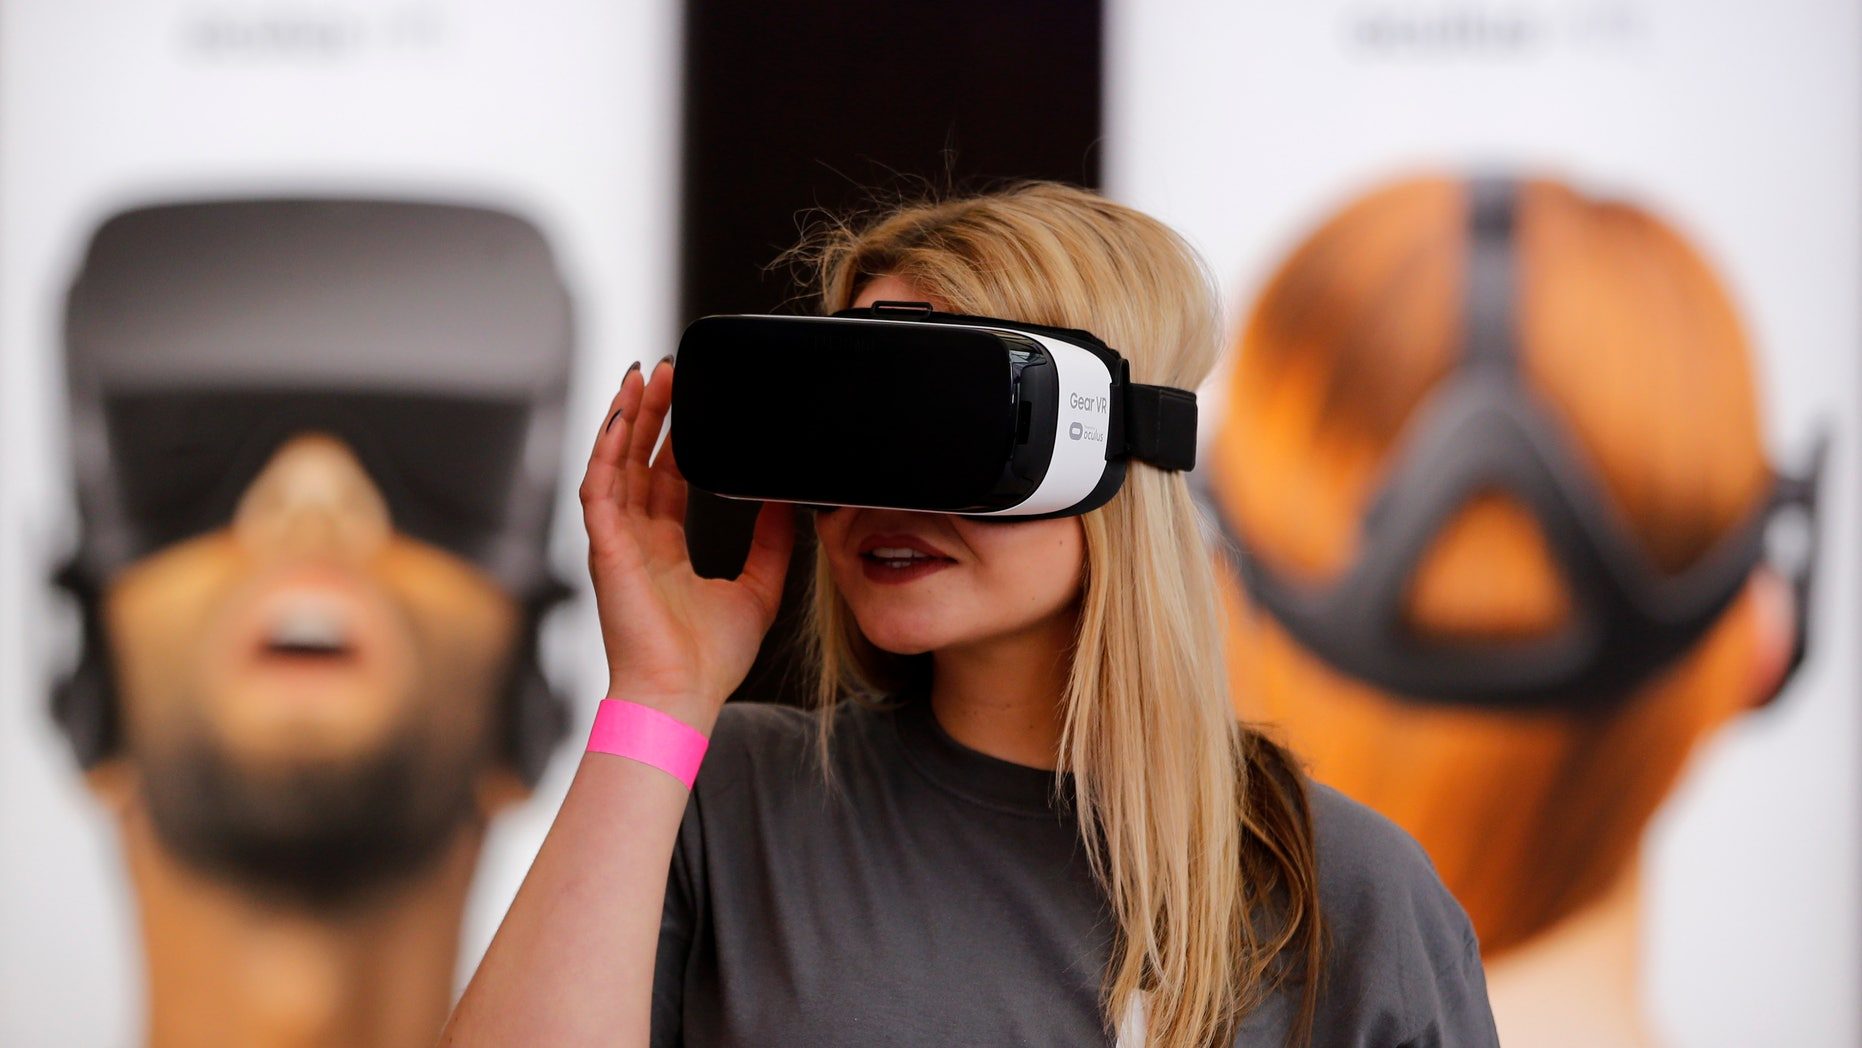 A Facebook staff uses a Gear VR virtual reality headset by Oculus and Samsung Electronics at the new Facebook Innovation Hub during a preview media tour in Berlin, Germany, February 24, 2016. (REUTERS/Fabrizio Bensch)